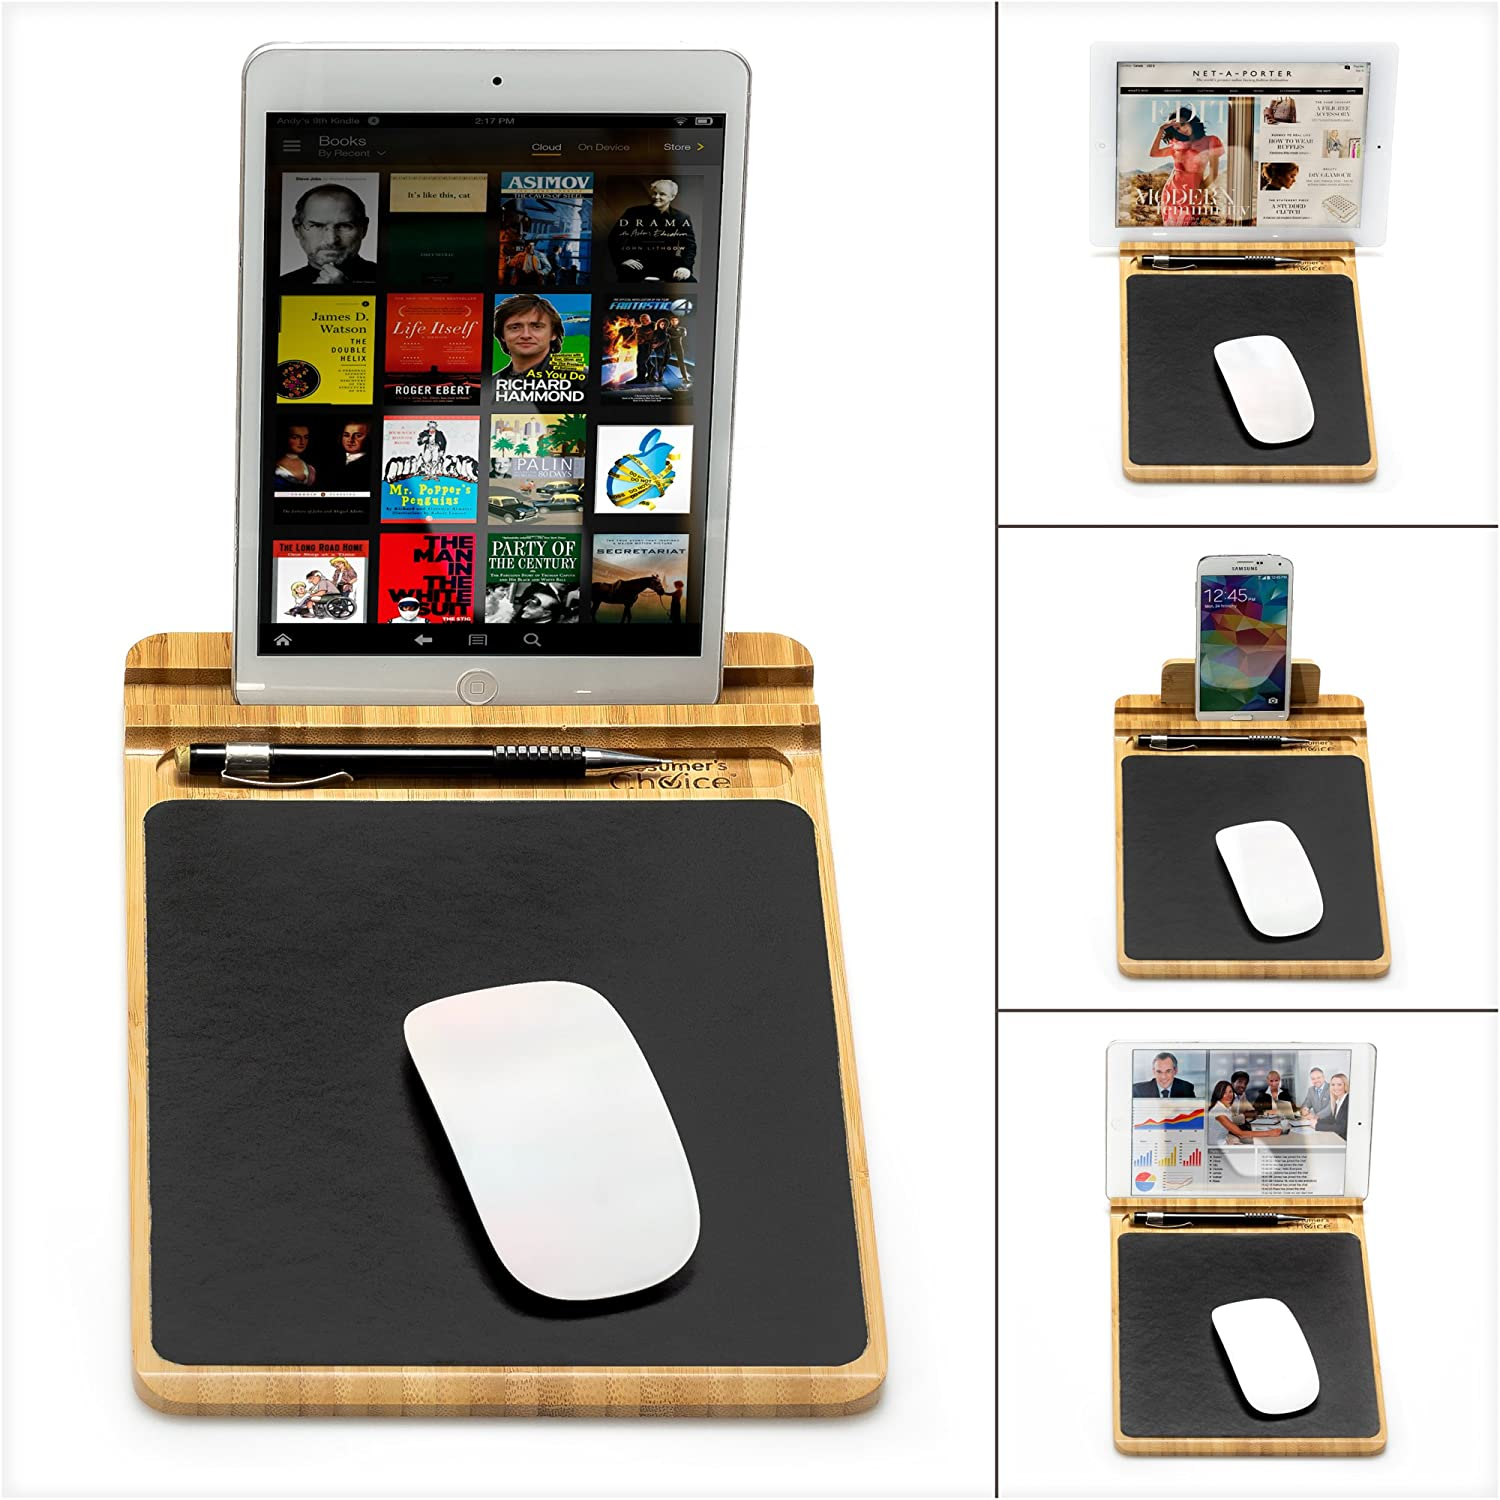 Prosumers Choice Bamboo Multifunctional Mouse Pad and Desk Organizer with Pen Holder and Tablet or Smartphone Stand